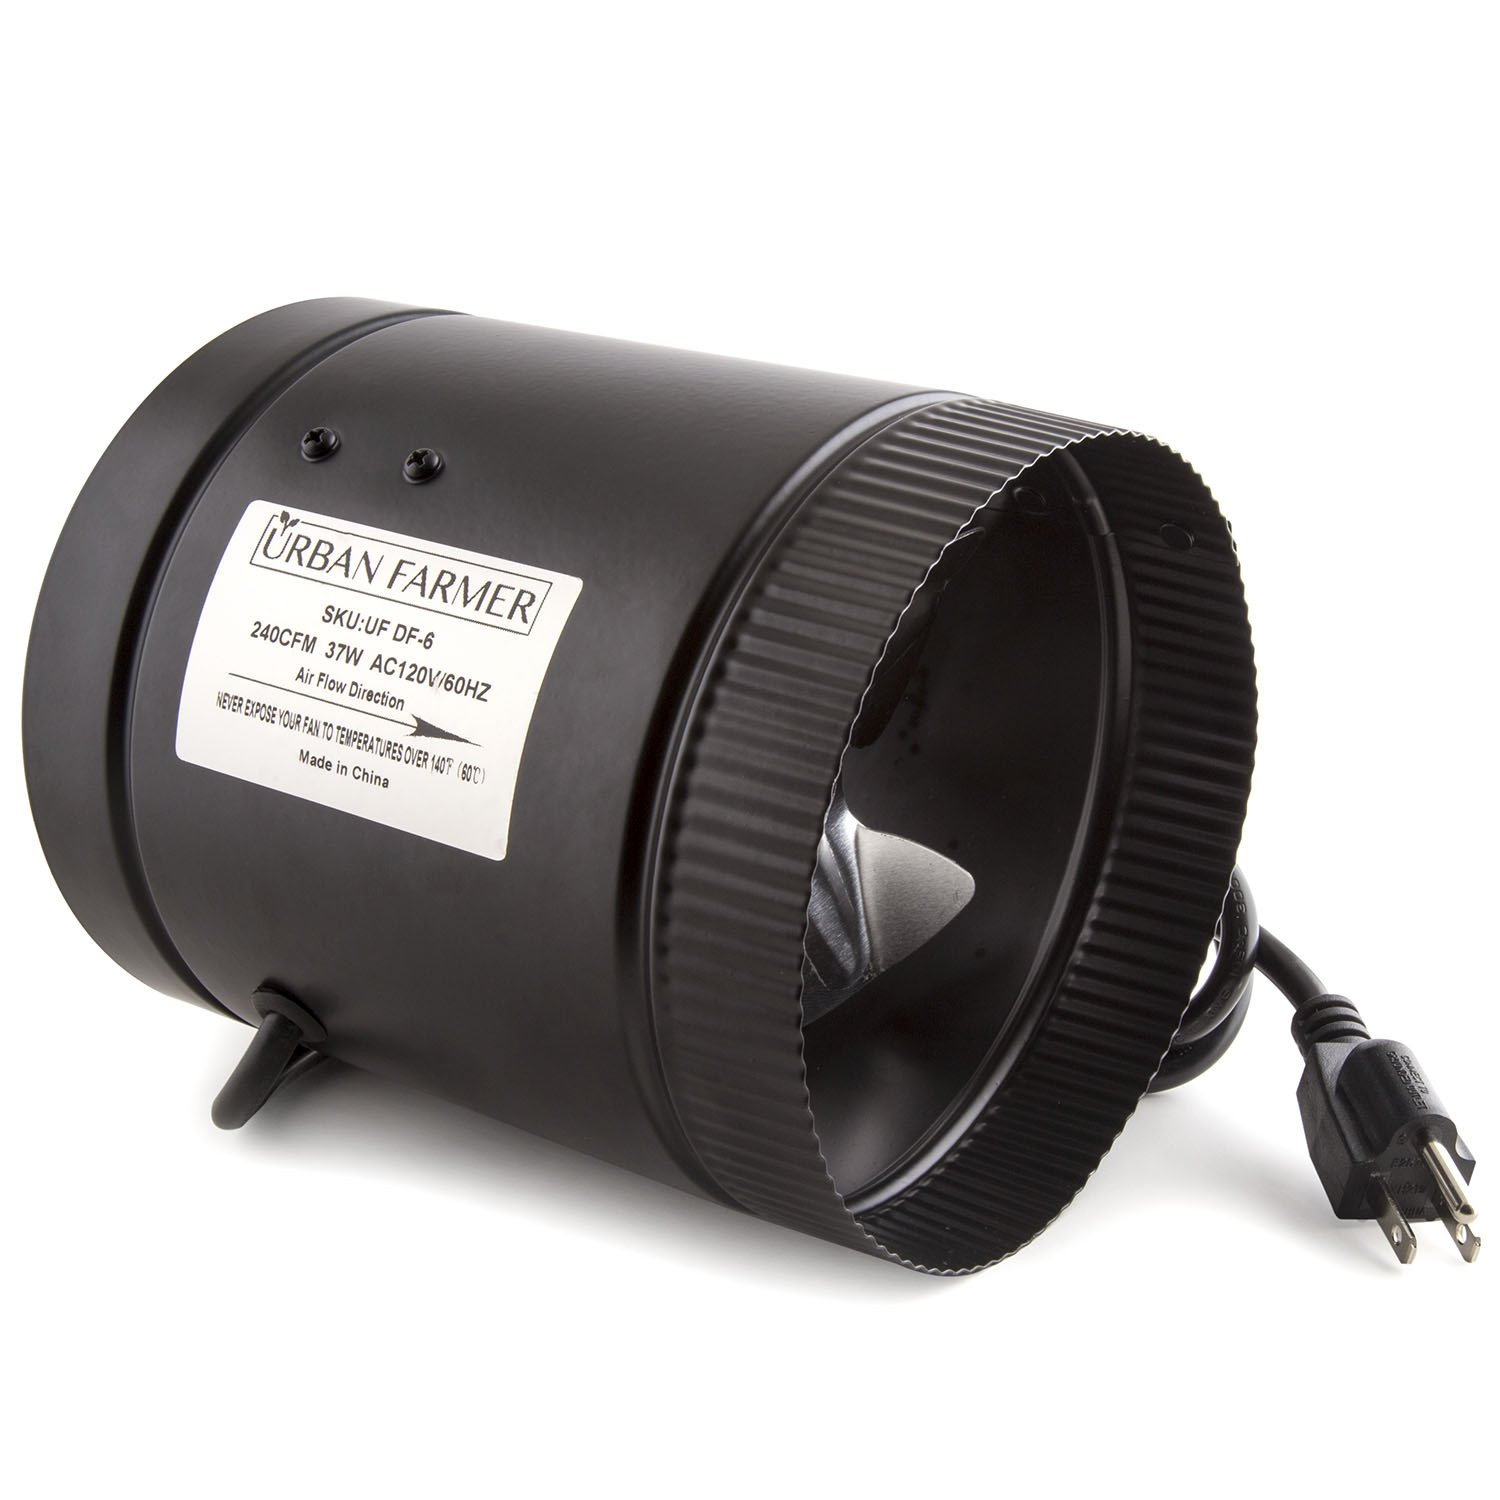 Urban Farmer 6'' Inch Inline Duct Booster Fan 240 CFM